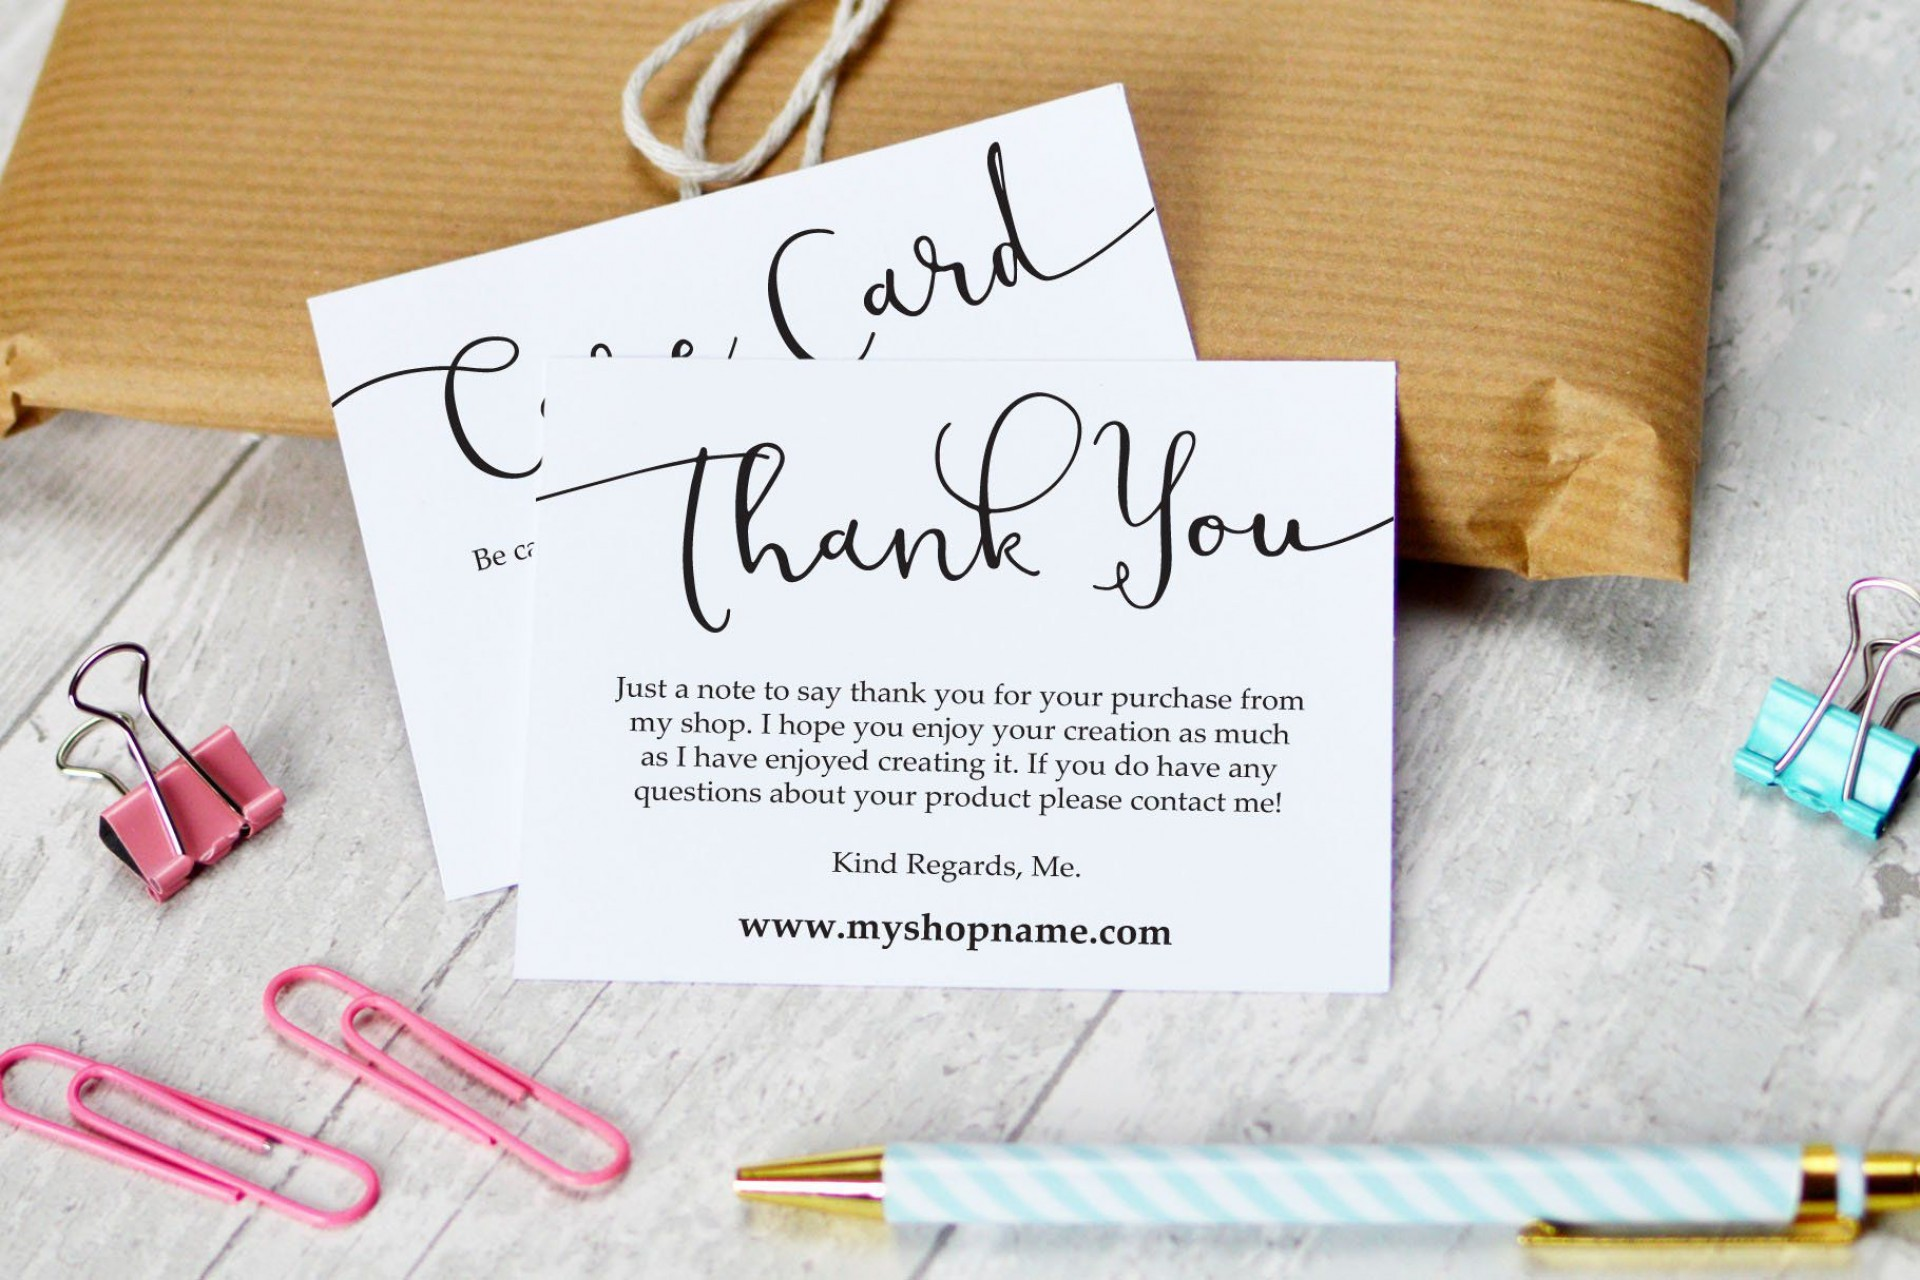 009 Striking Thank You Note Card Template Word Concept 1920